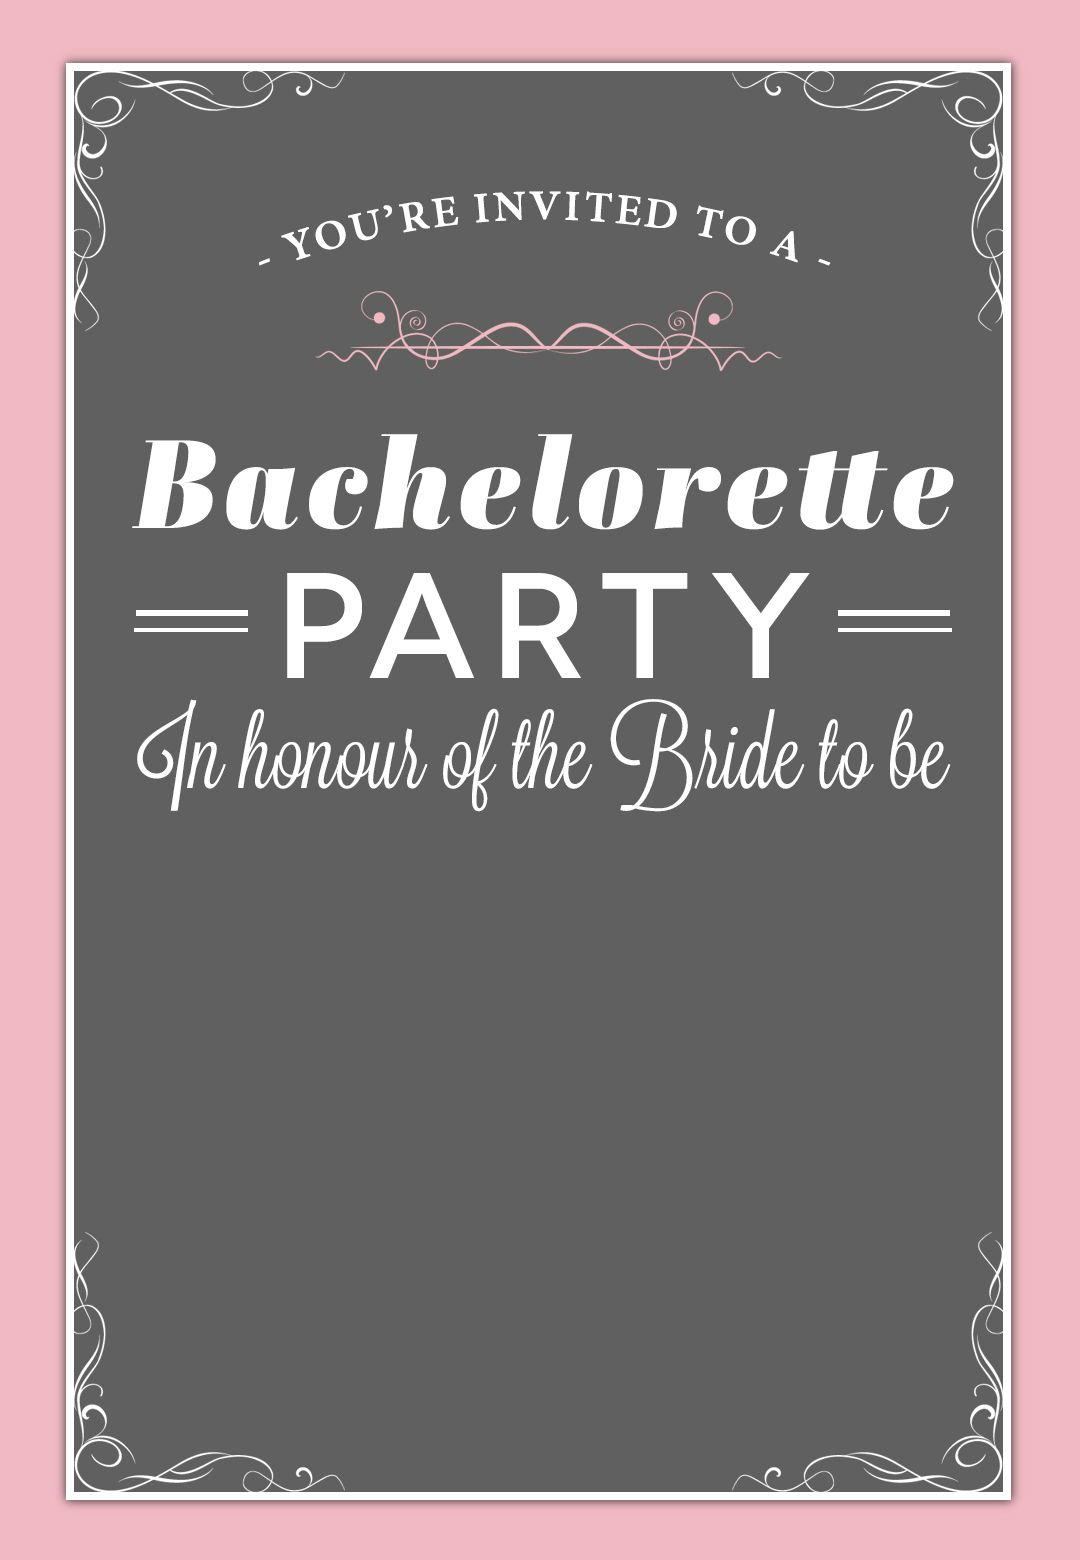 In Honour Of The Bride - Free Printable Bridal Shower Invitation - Free Printable Bridal Shower Invitations